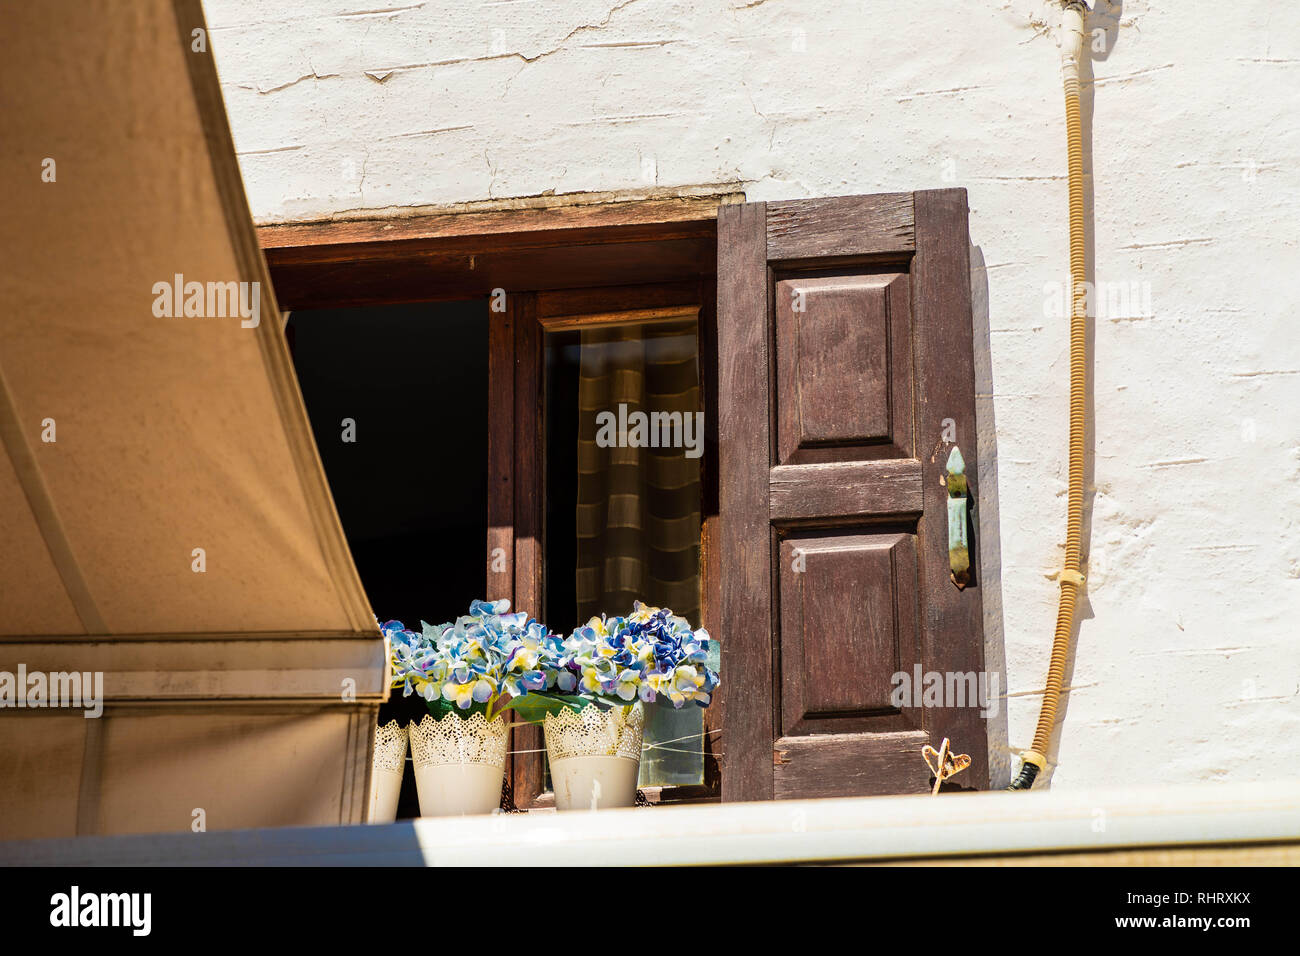 Upper apartment in Lindos Village with silk flowers in lace pots on the window sills. - Stock Image